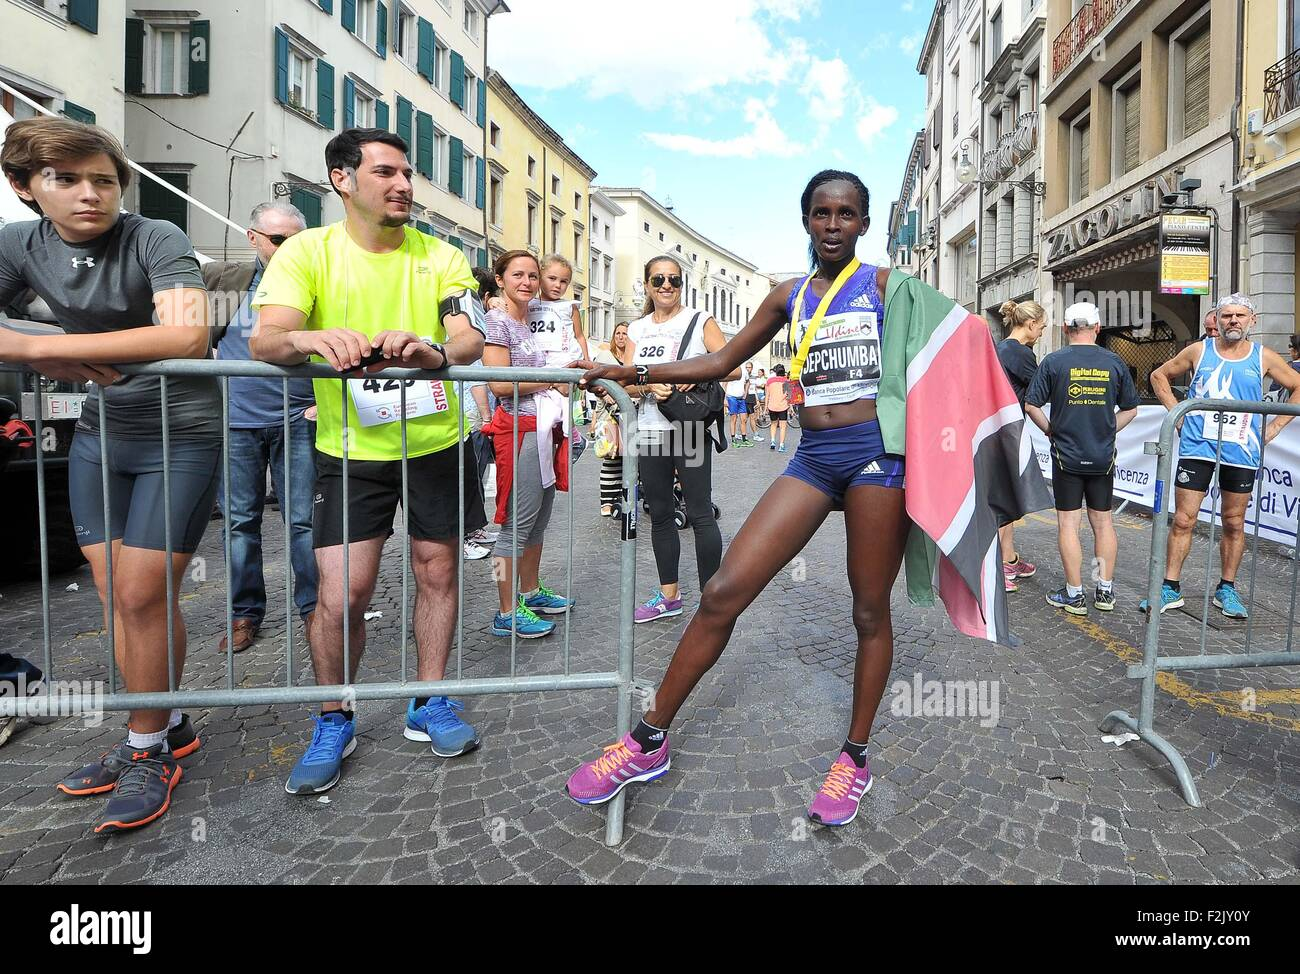 Udine, Italy. 20th September, 2015. Viola Jepchumba ,from Kenya, is the first woman at the finish of the Udine City - Stock Image